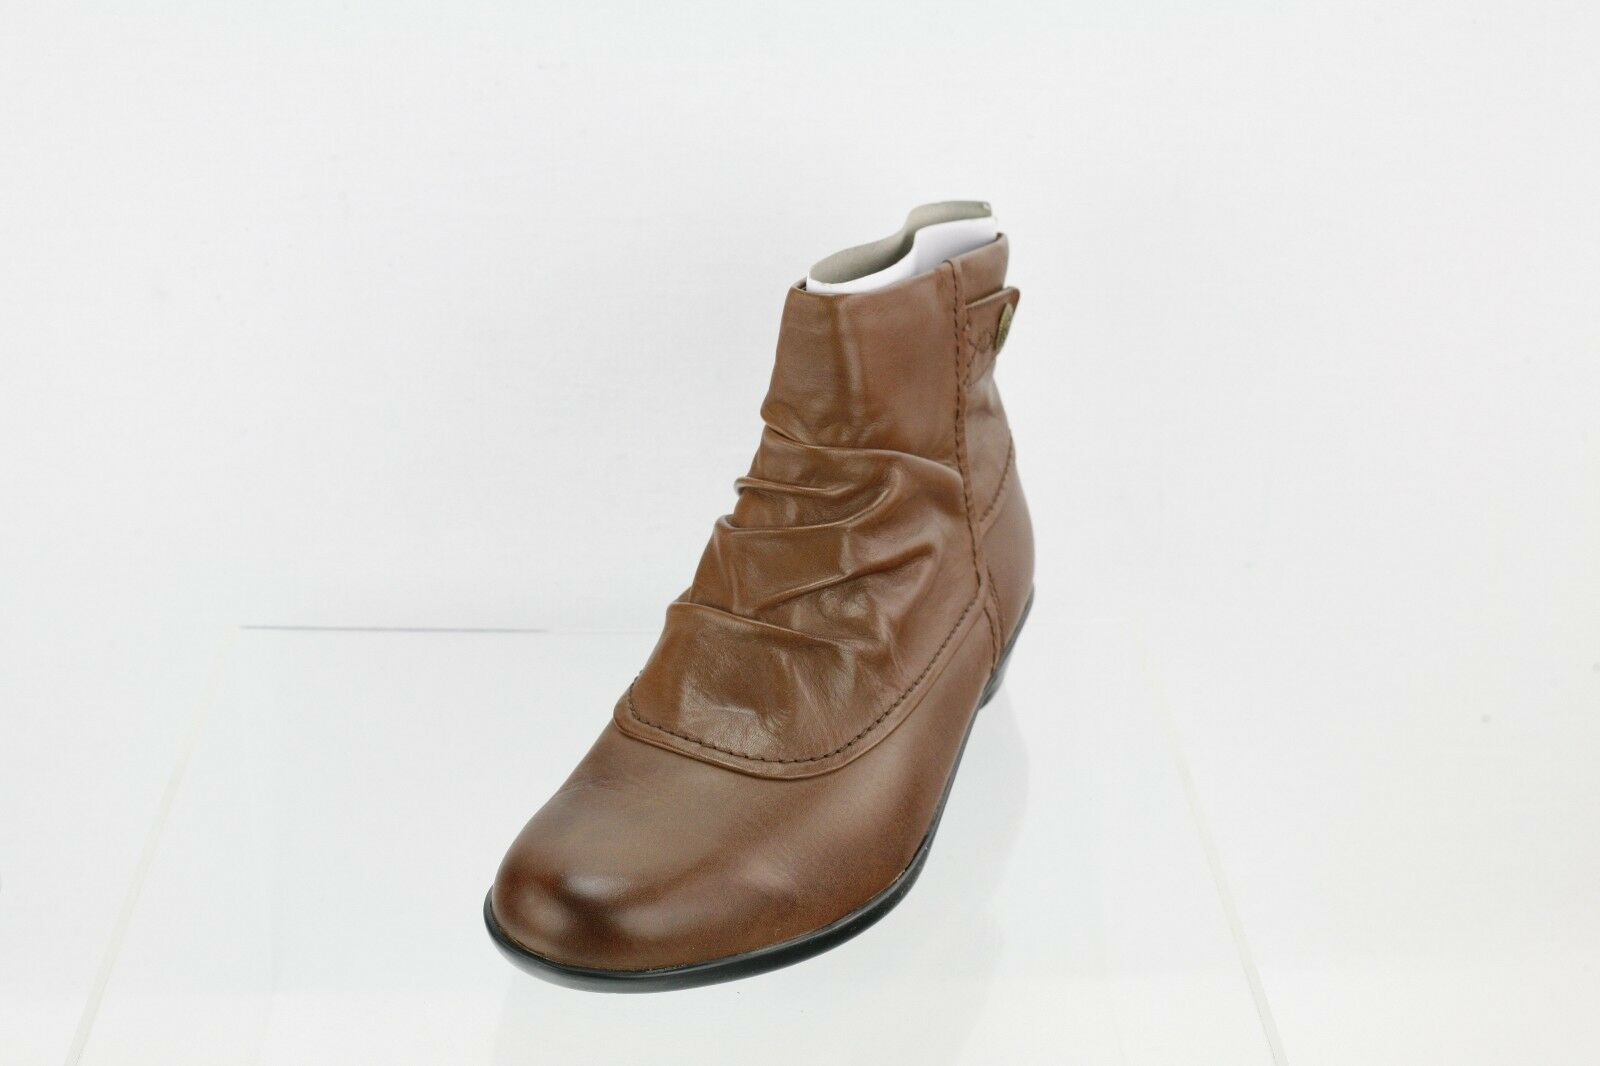 Women's Cobb Hill Veronica Brown Leather Flat Ankle Boots Size 7 M